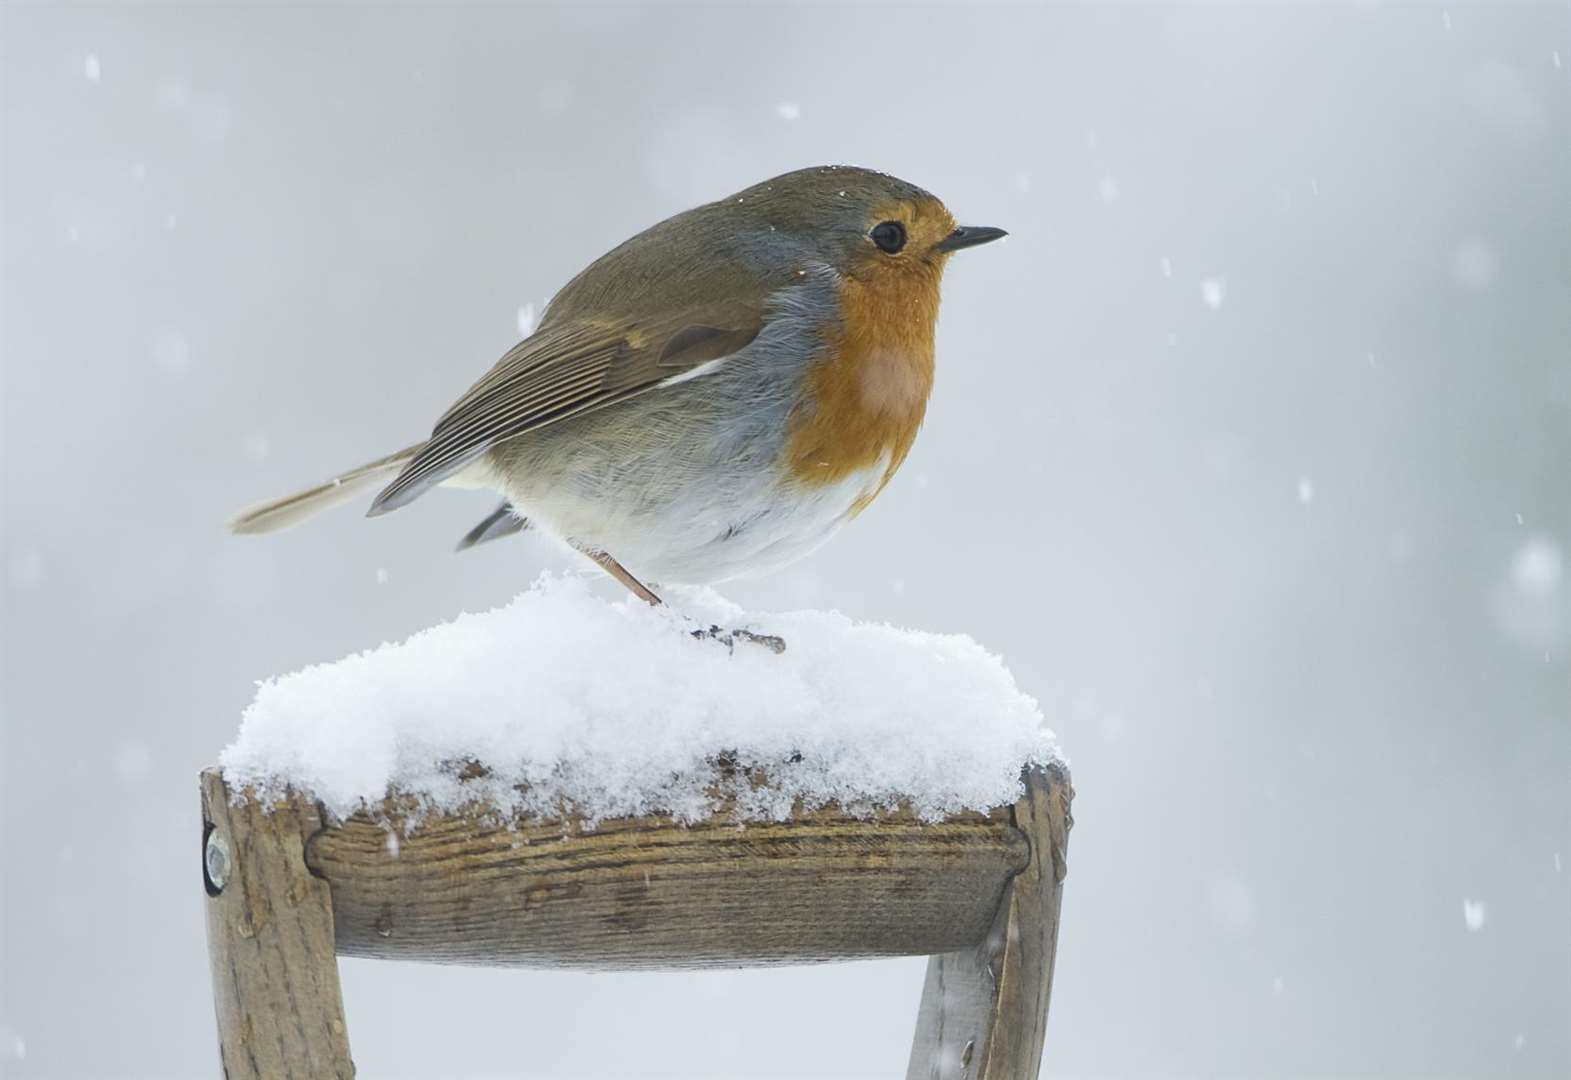 Over-indulging? Spare a thought for the famished birds of Christmas